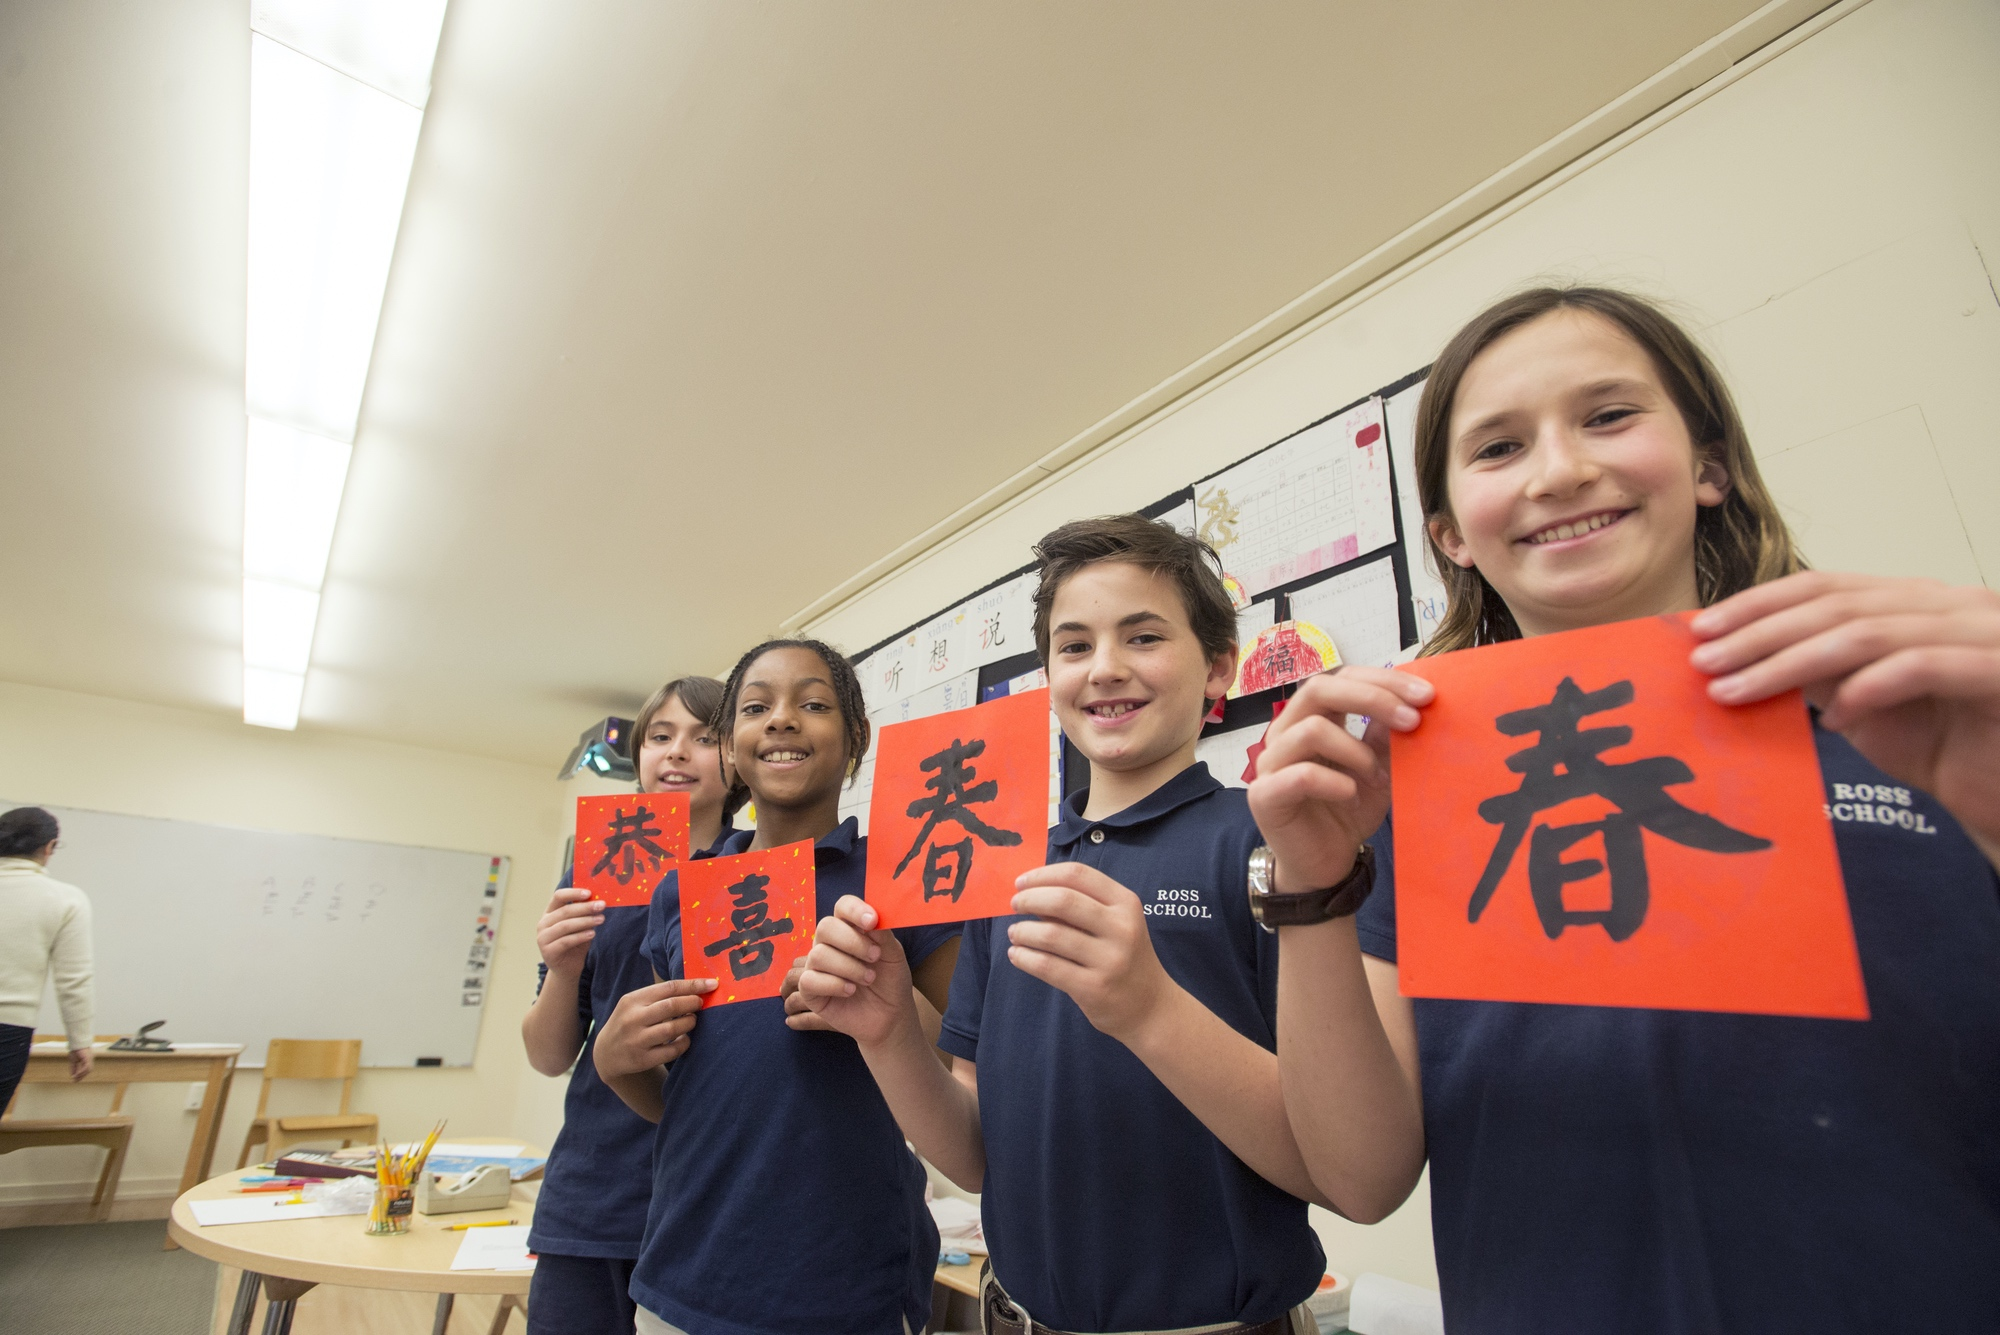 Ross Elementary School students hold up Mandarin language signs as part of their study of the language which begins in Kindergarten